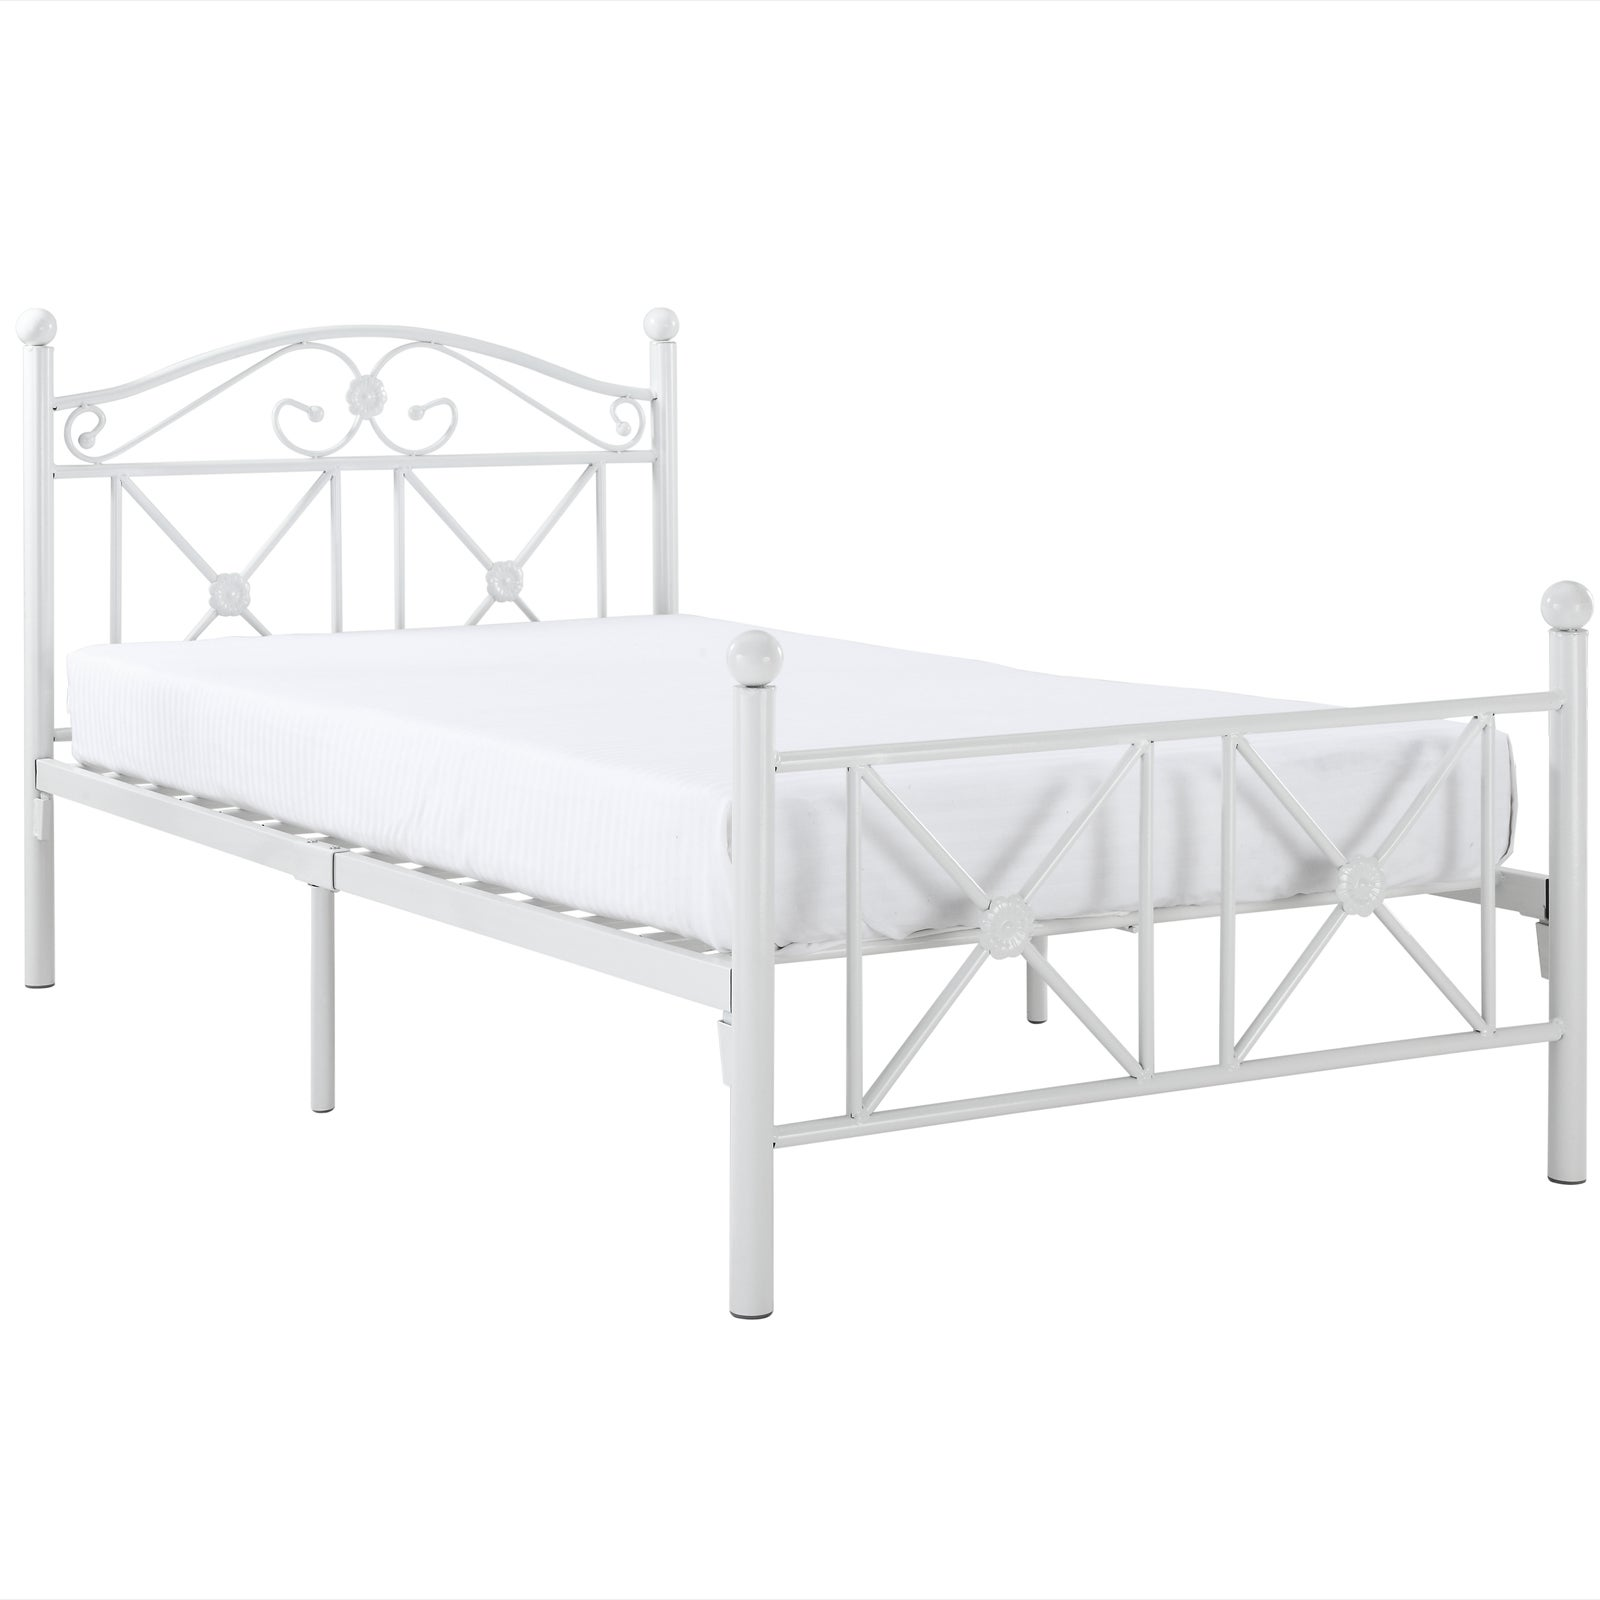 depot p twin the home beds south bed headboards frames pure frame libra kids shore white